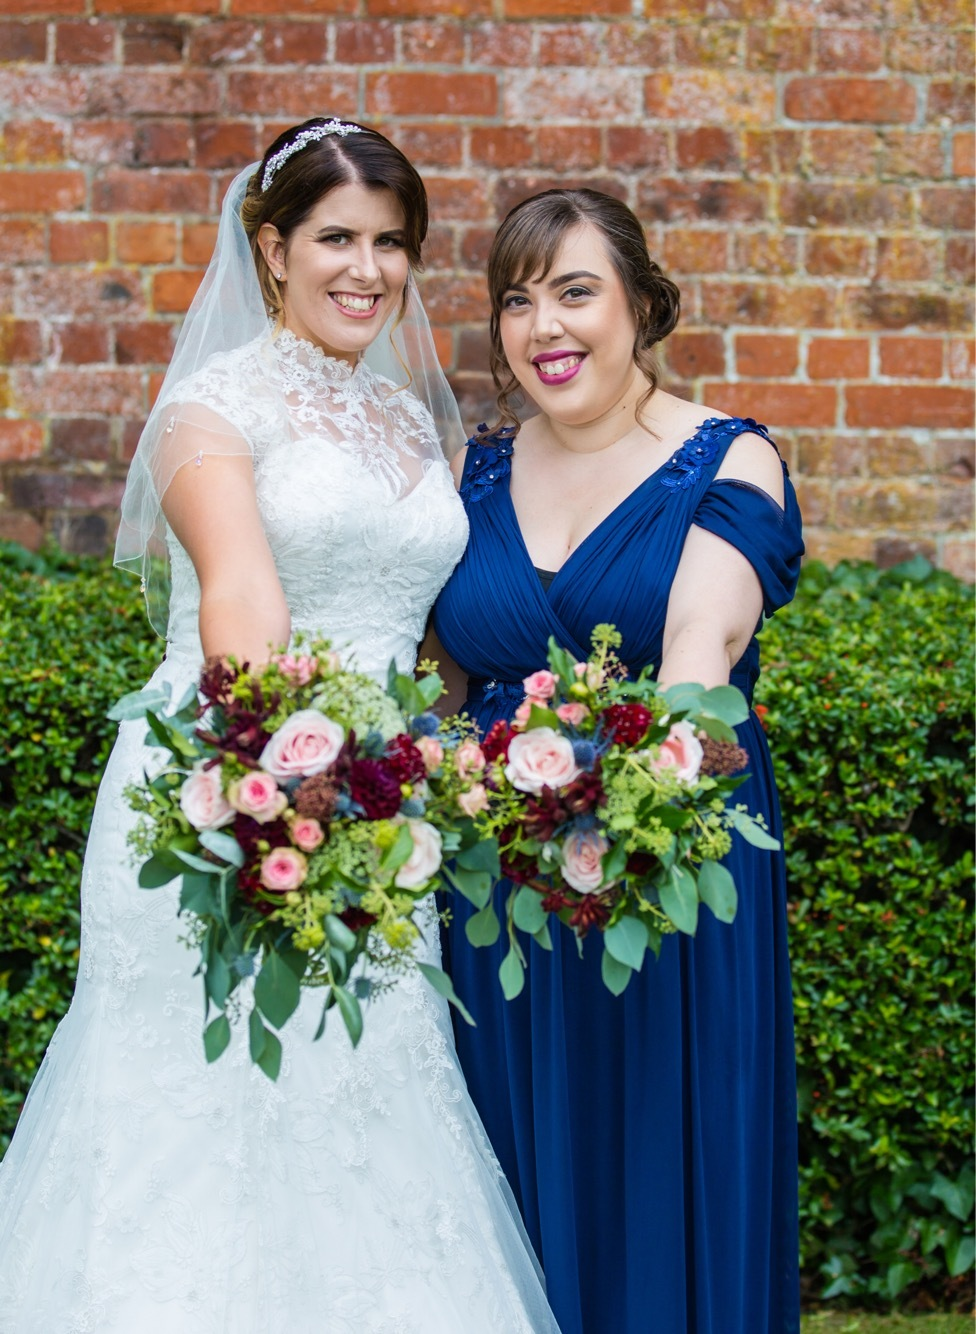 Anita and her Maid of Honour enjoying their flowers